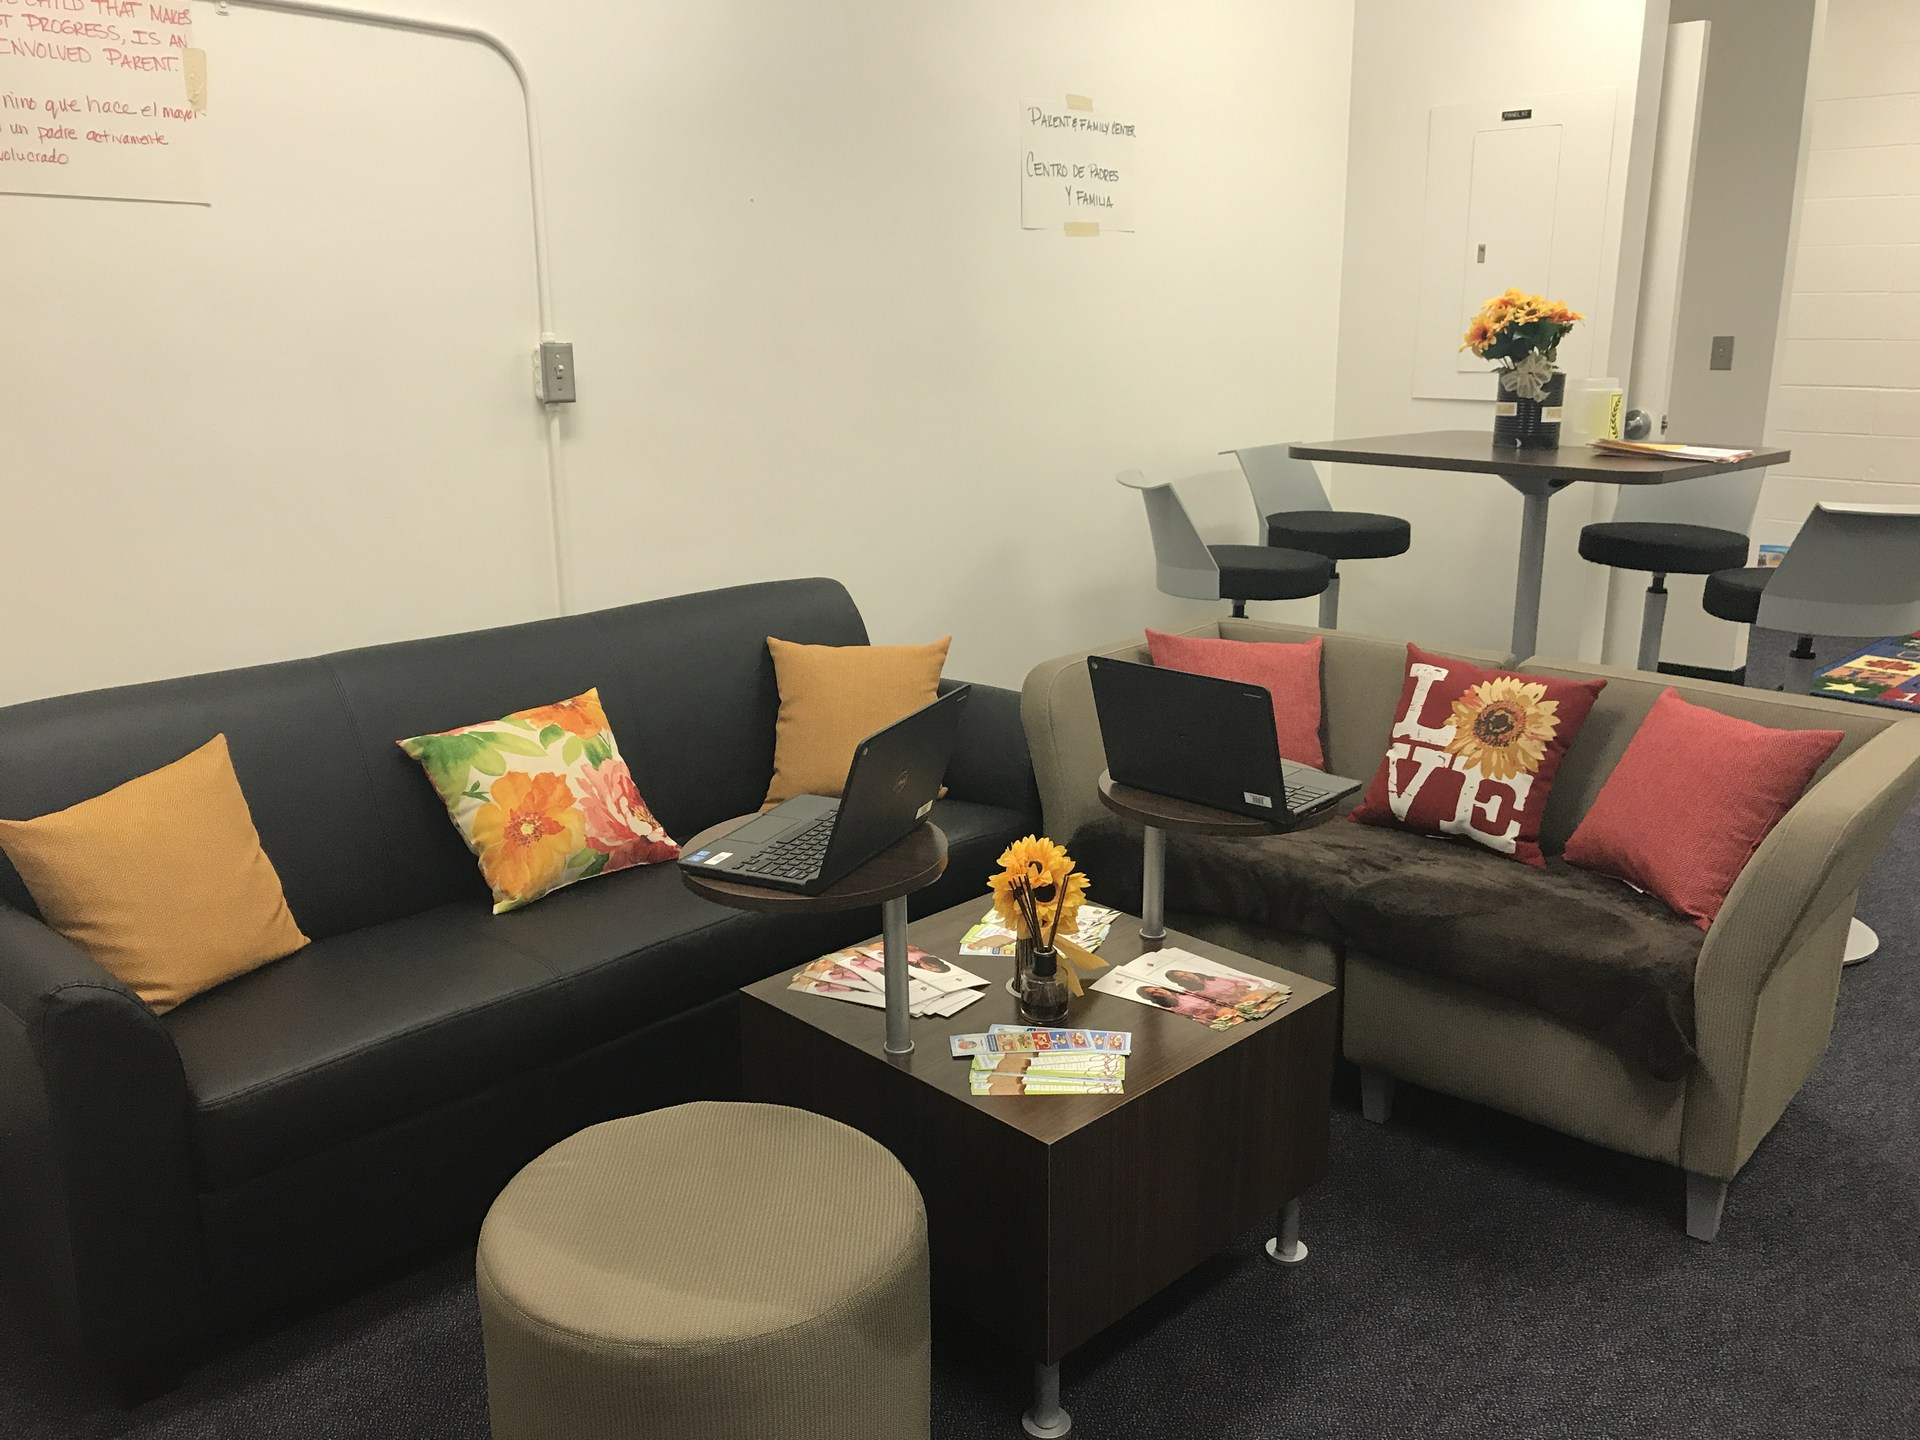 Lounge Area of the Parent Center